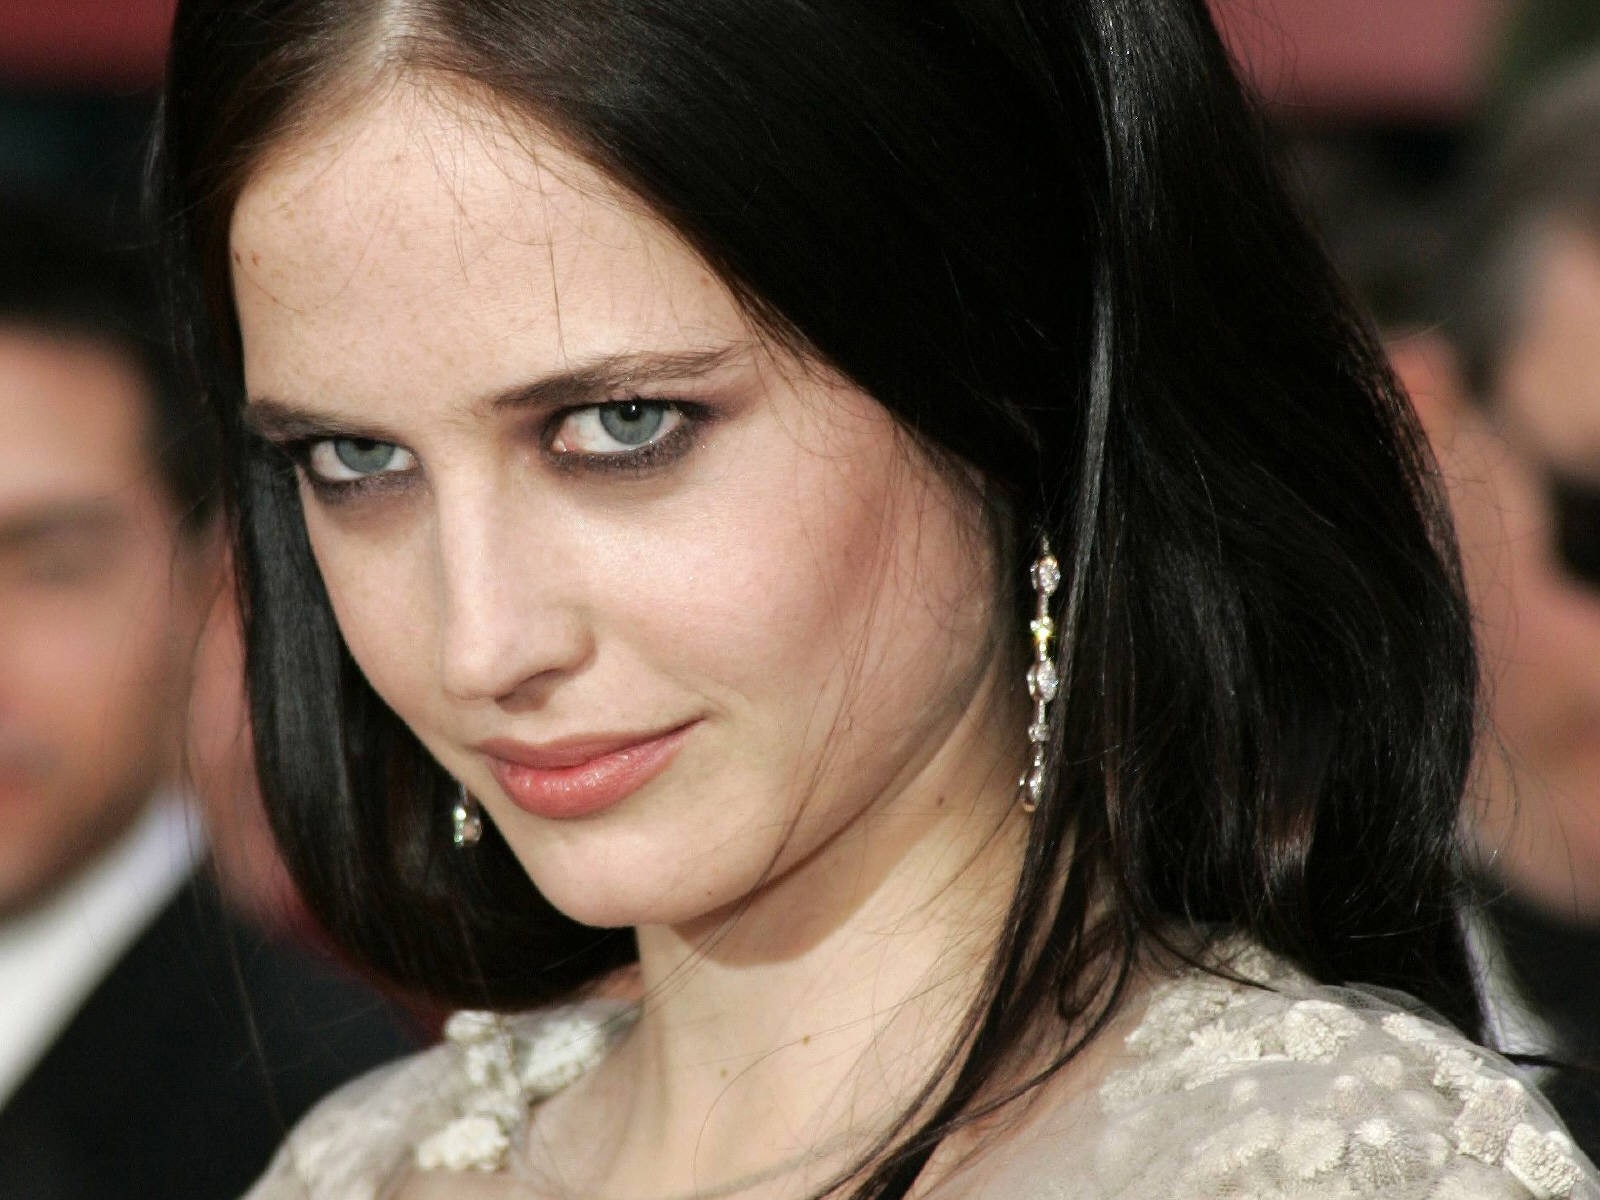 Wallpaper dell'attrice francese Eva Green